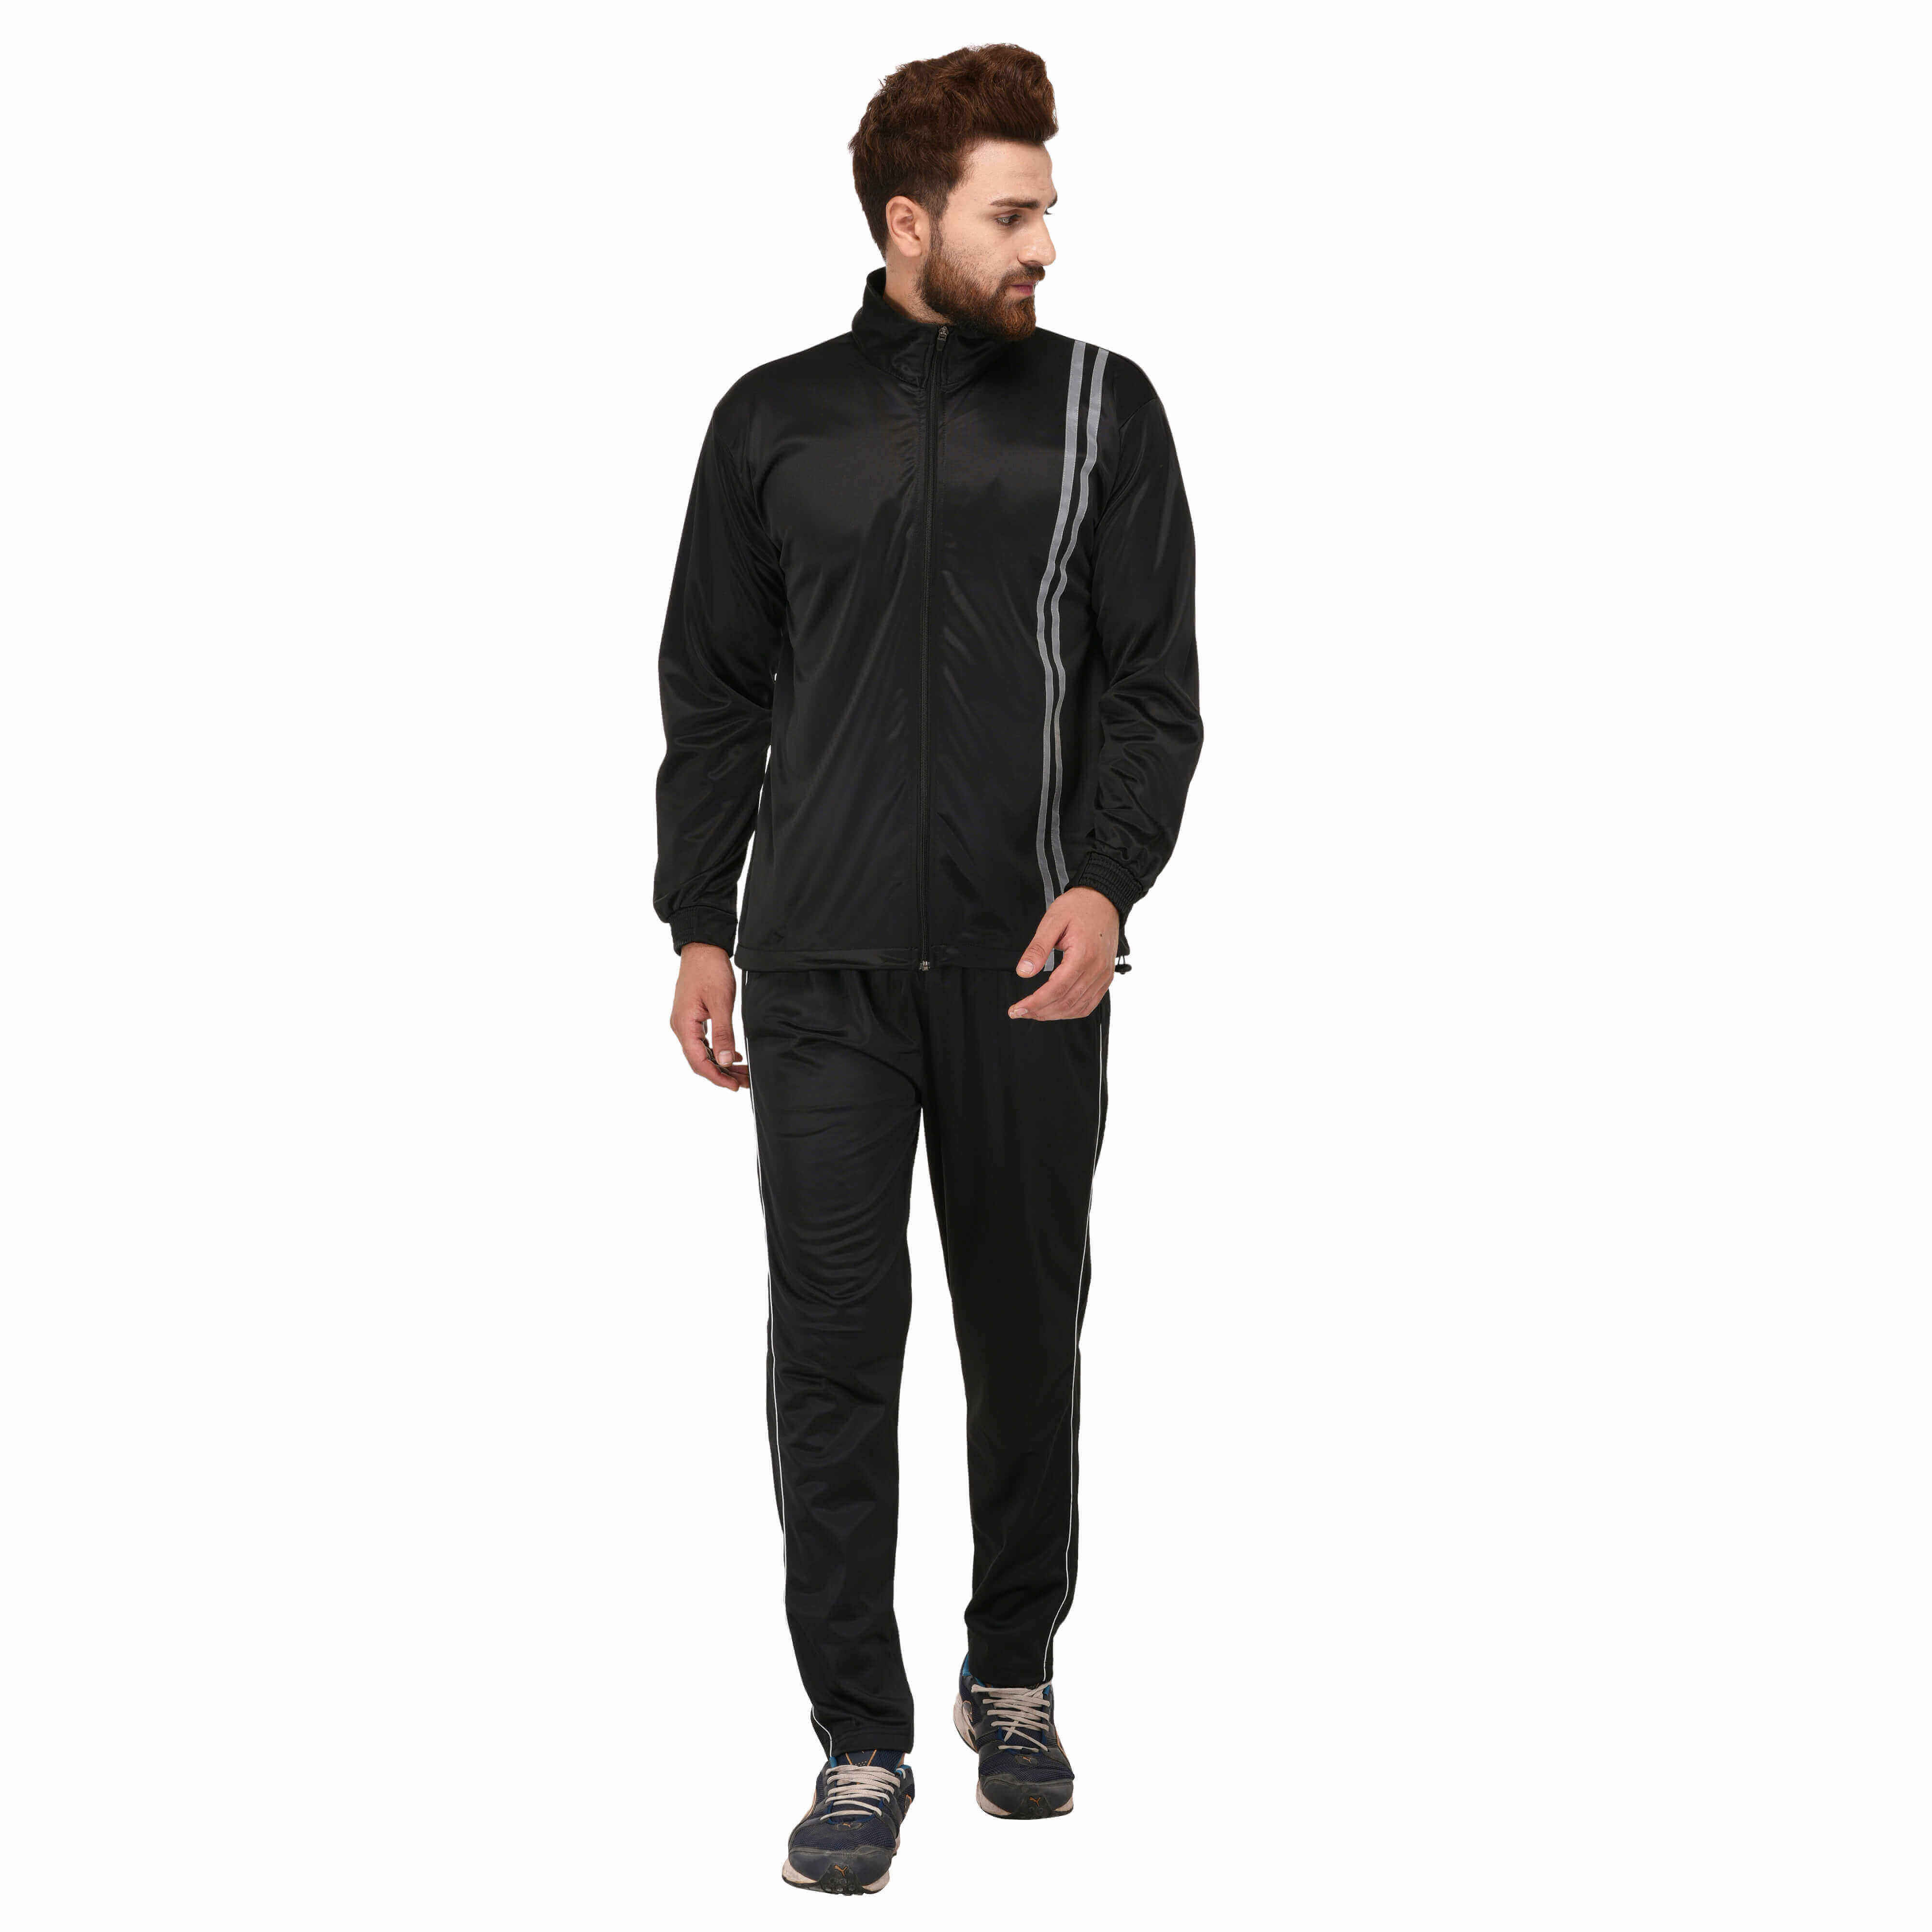 Mens Tracksuit Set Manufacturers in Serbia